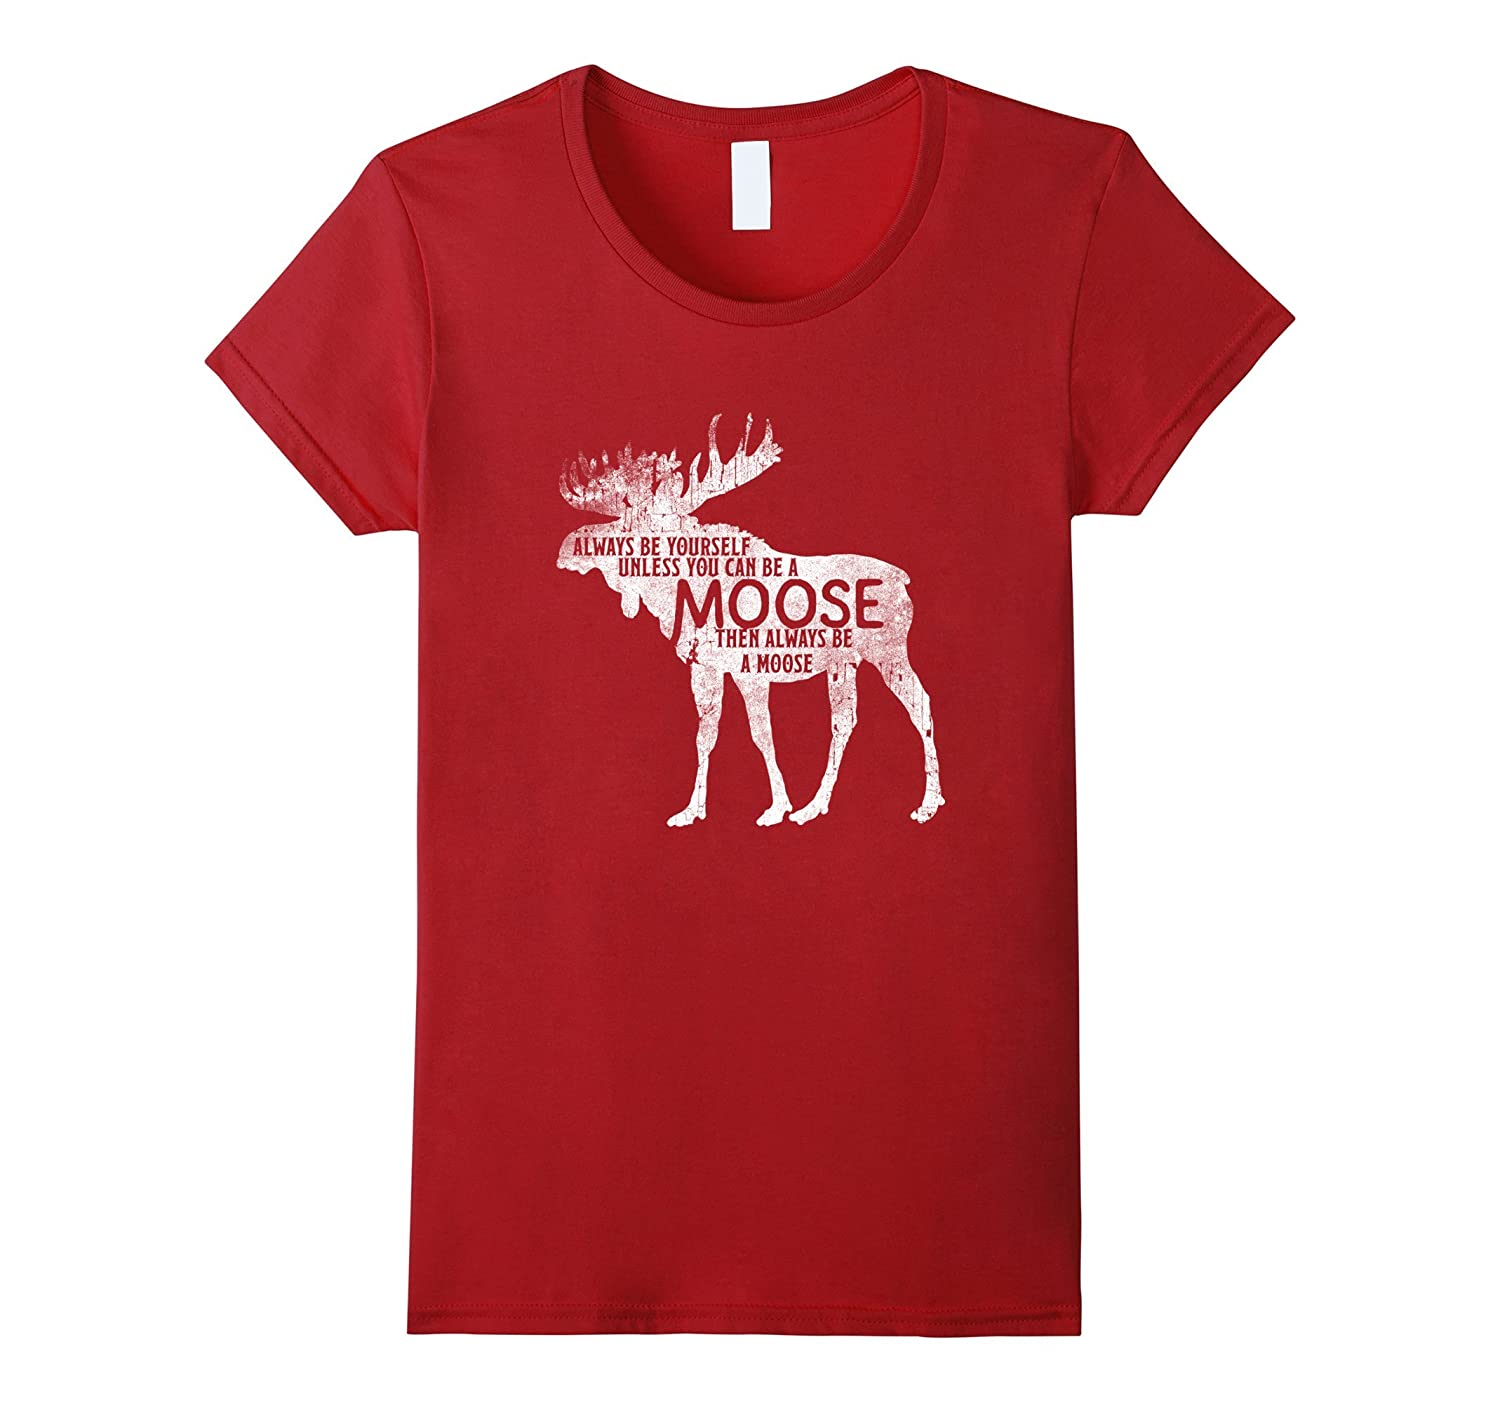 Always Be Yourself Unless You Can Be A Moose T-shirt Fun Tee